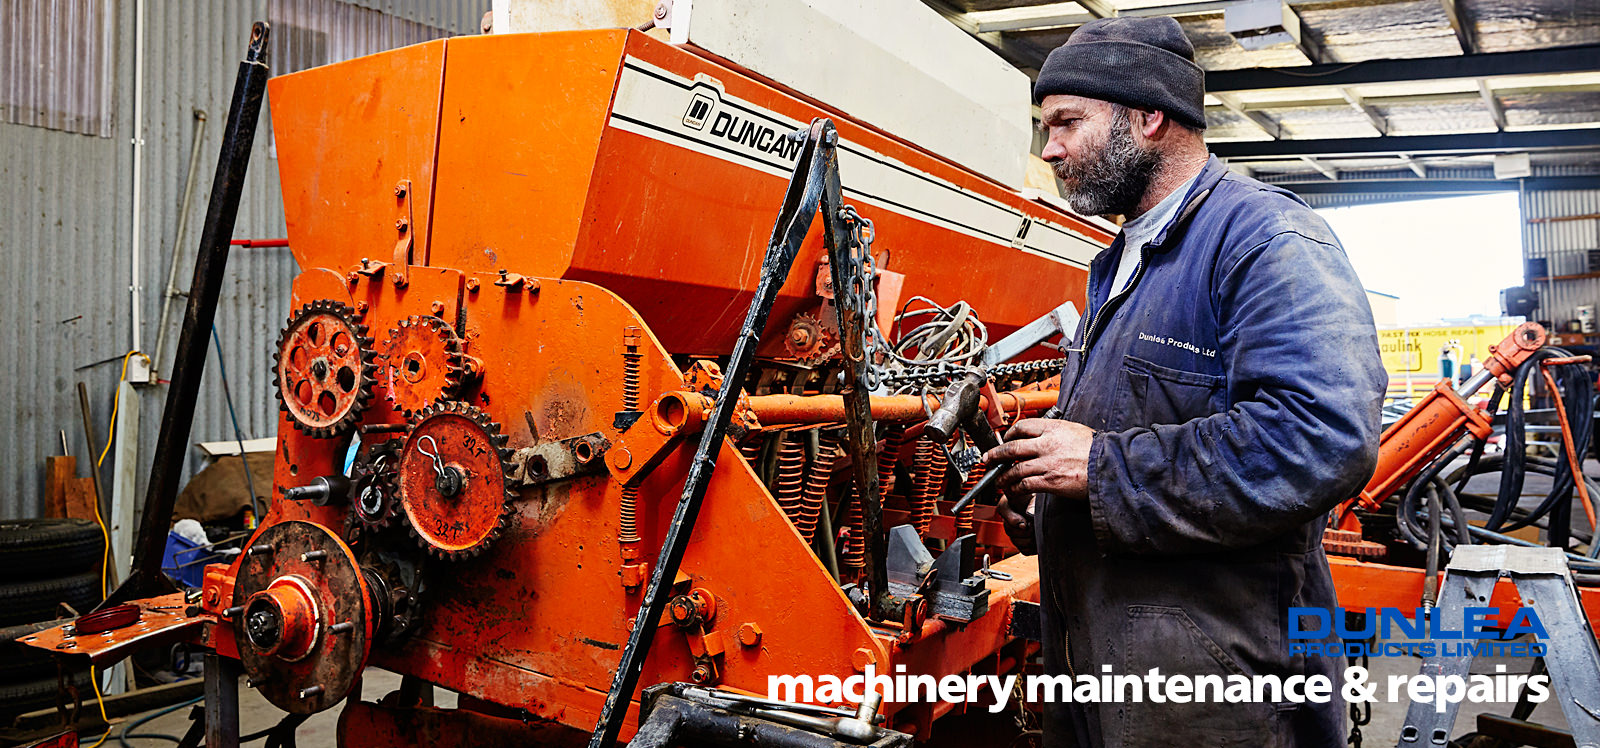 Dunlea Products metal machinery maintenance & repairs